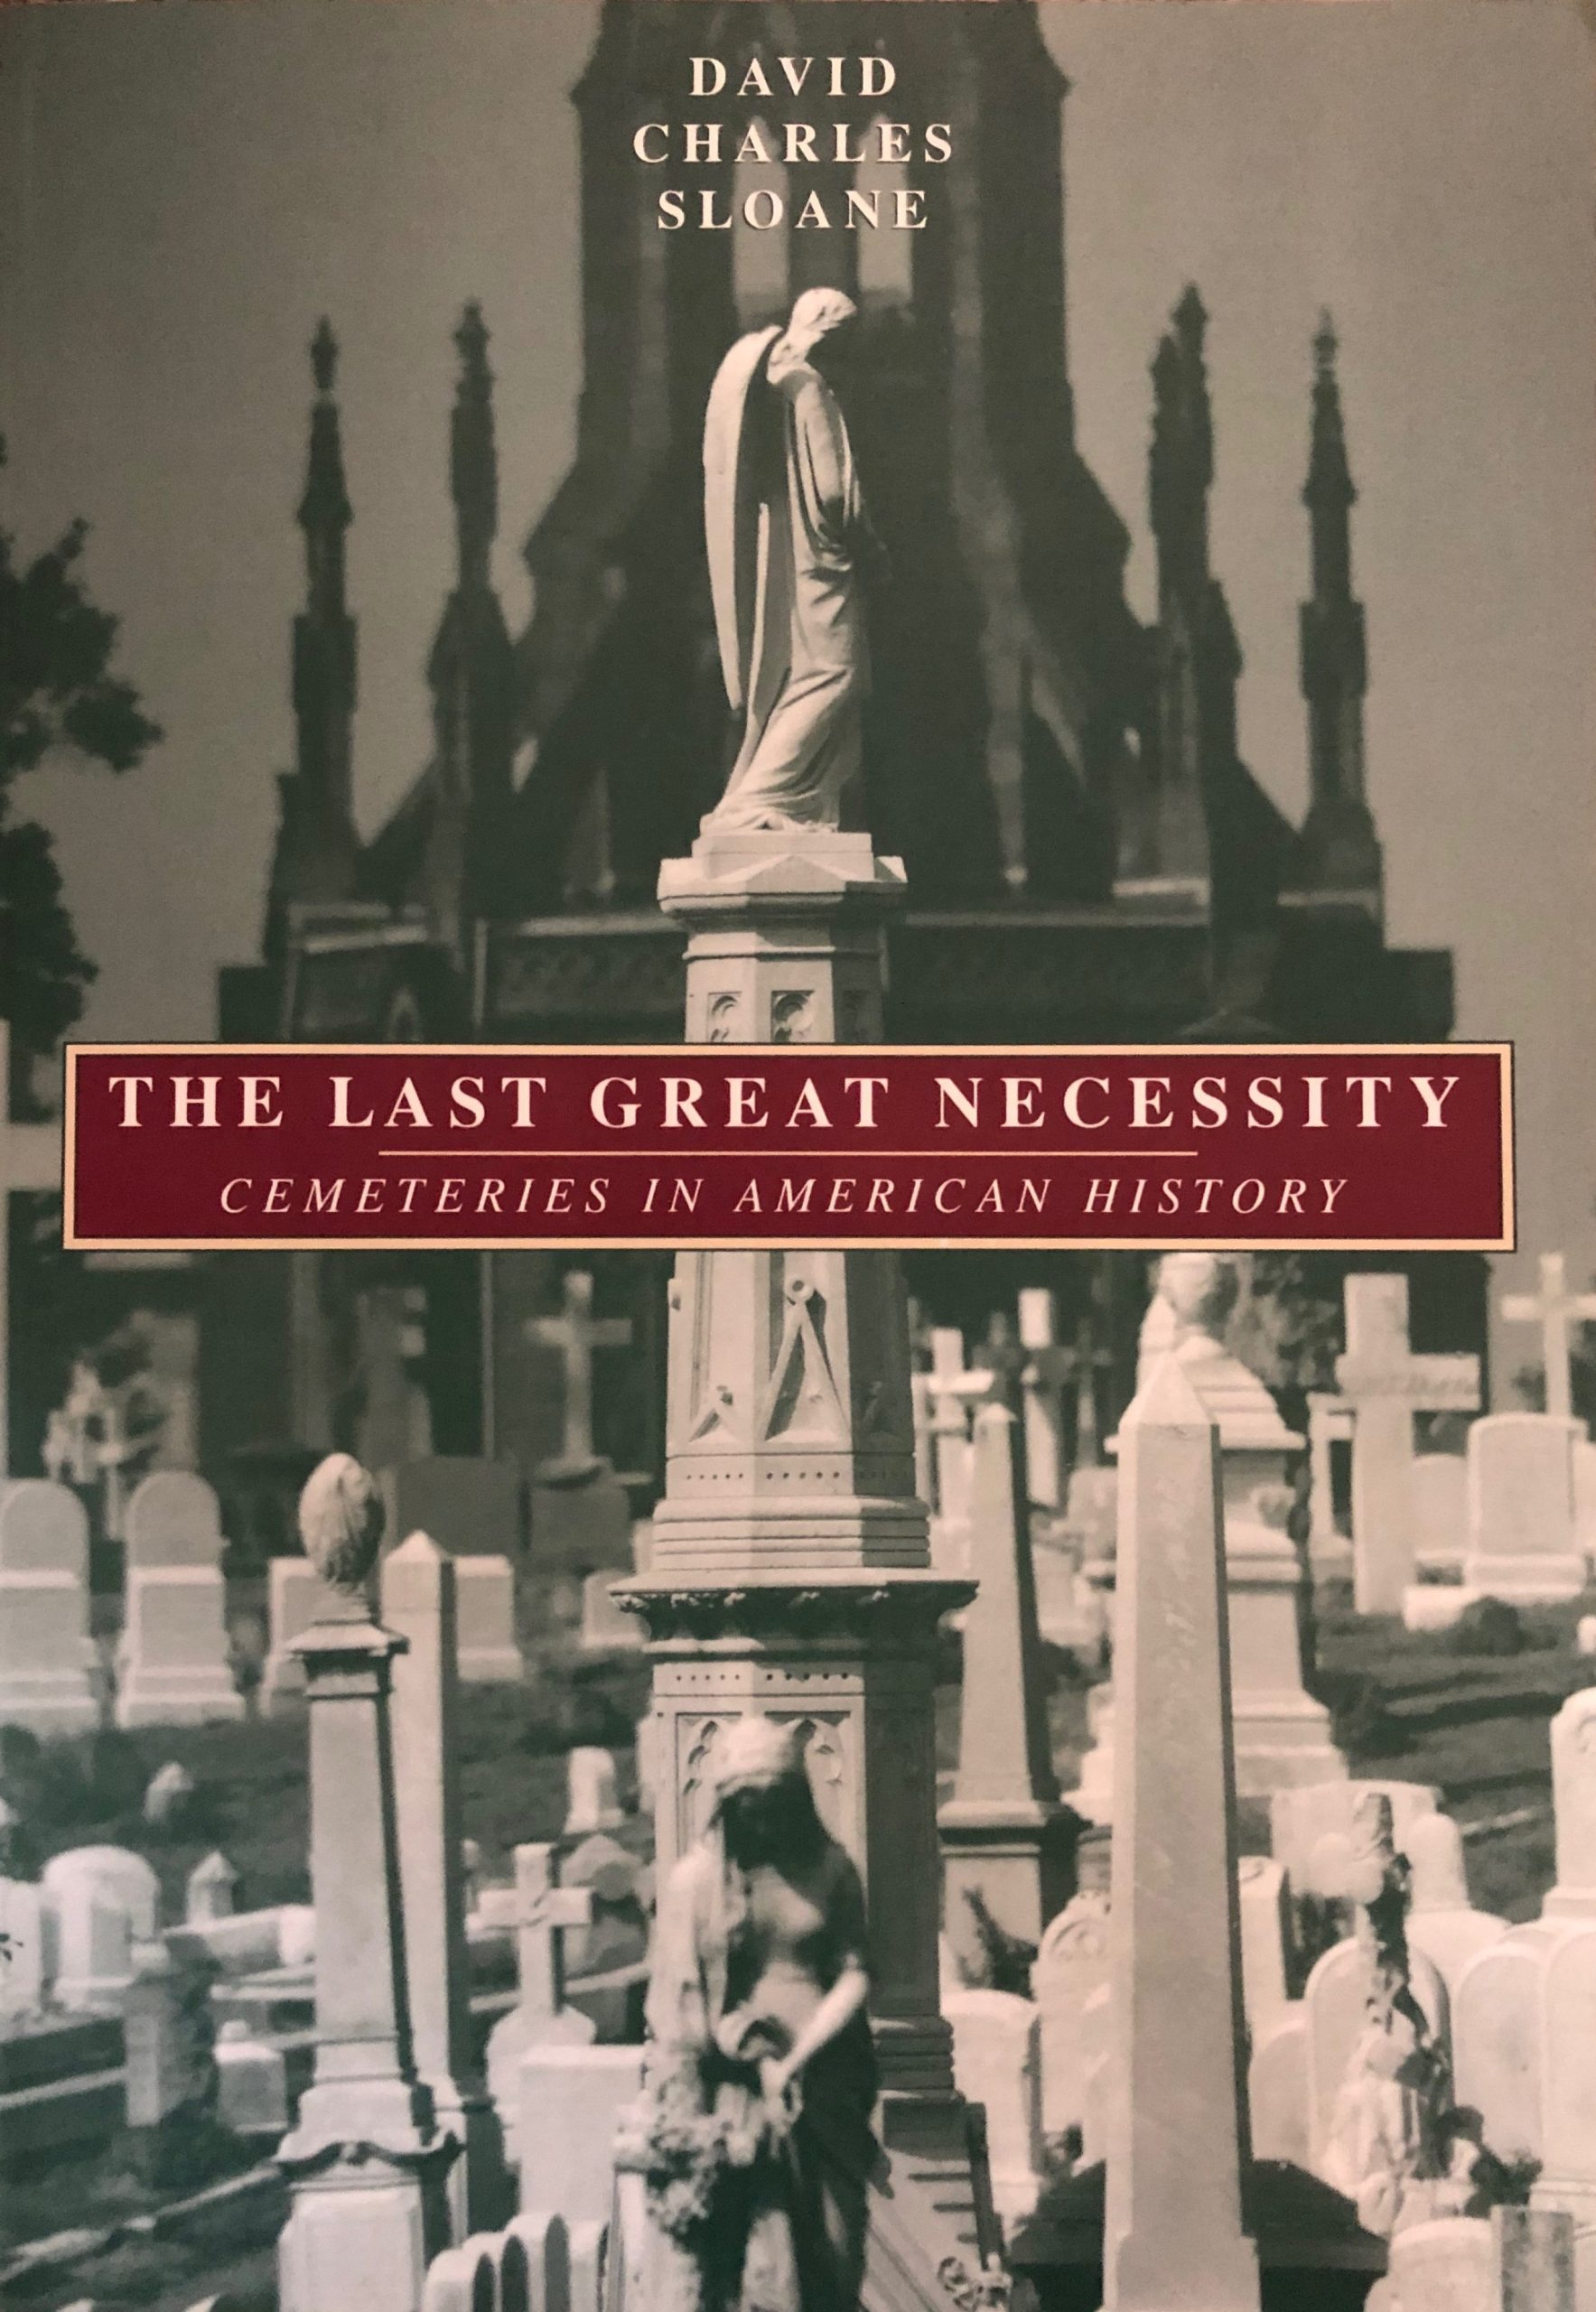 The Last Great Necessity: Cemeteries in American History (1995)